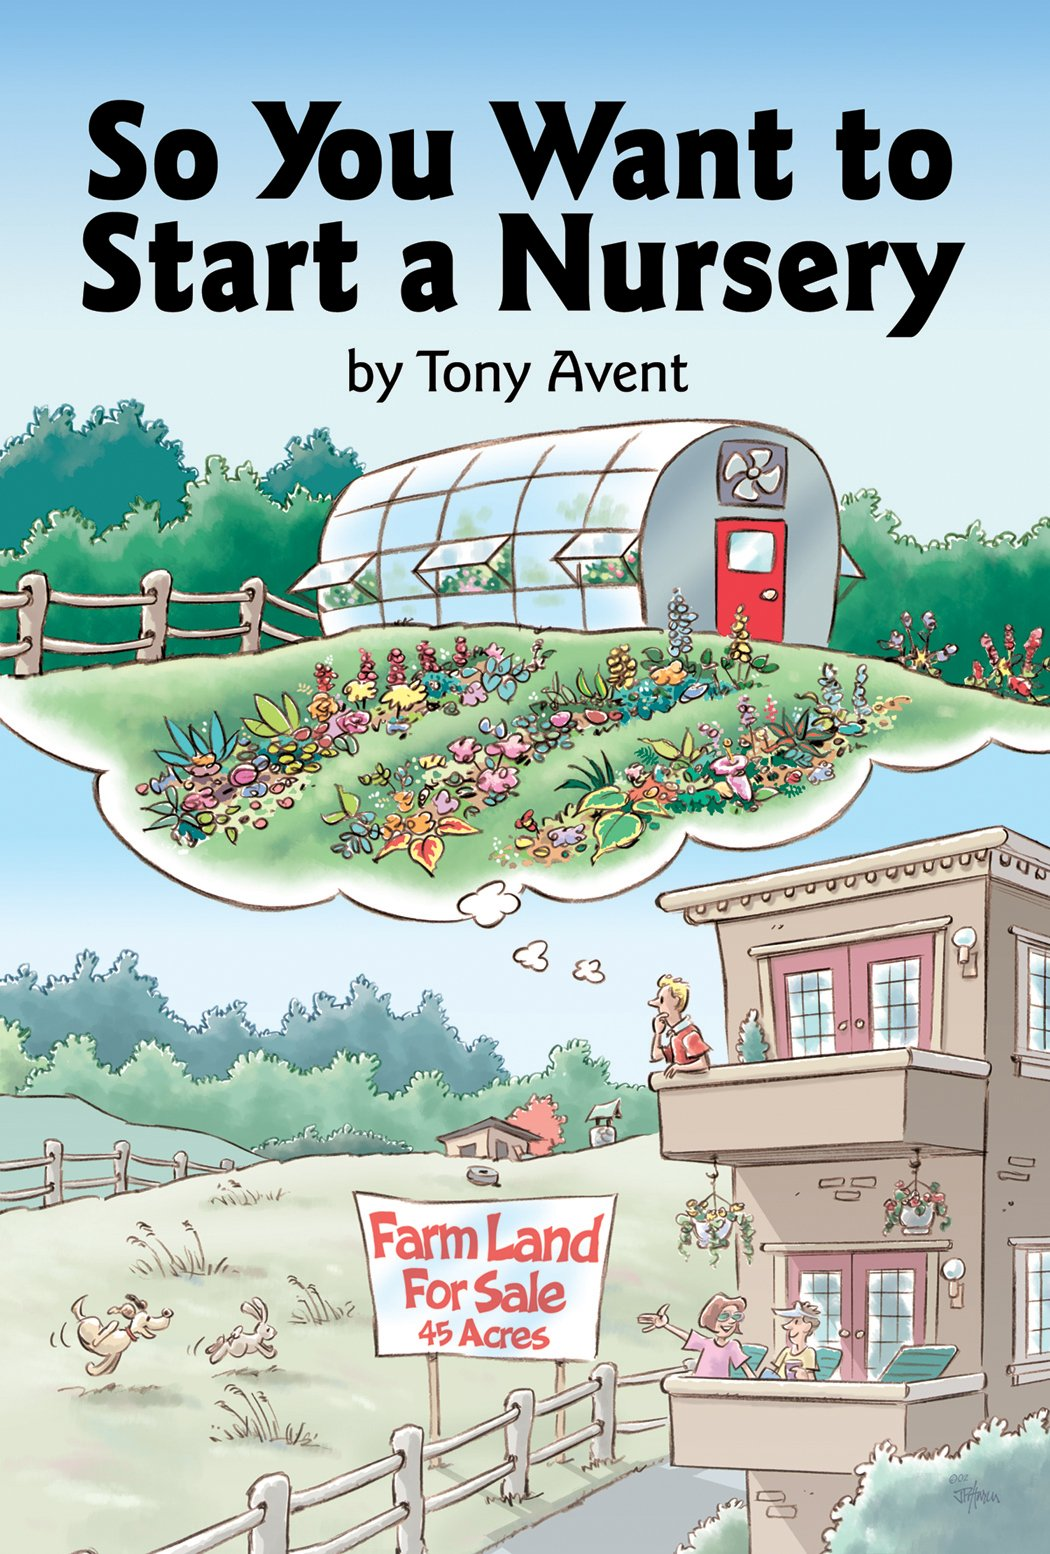 So You Want to Start a Nursery: Tony Avent: 9780881925845 ...